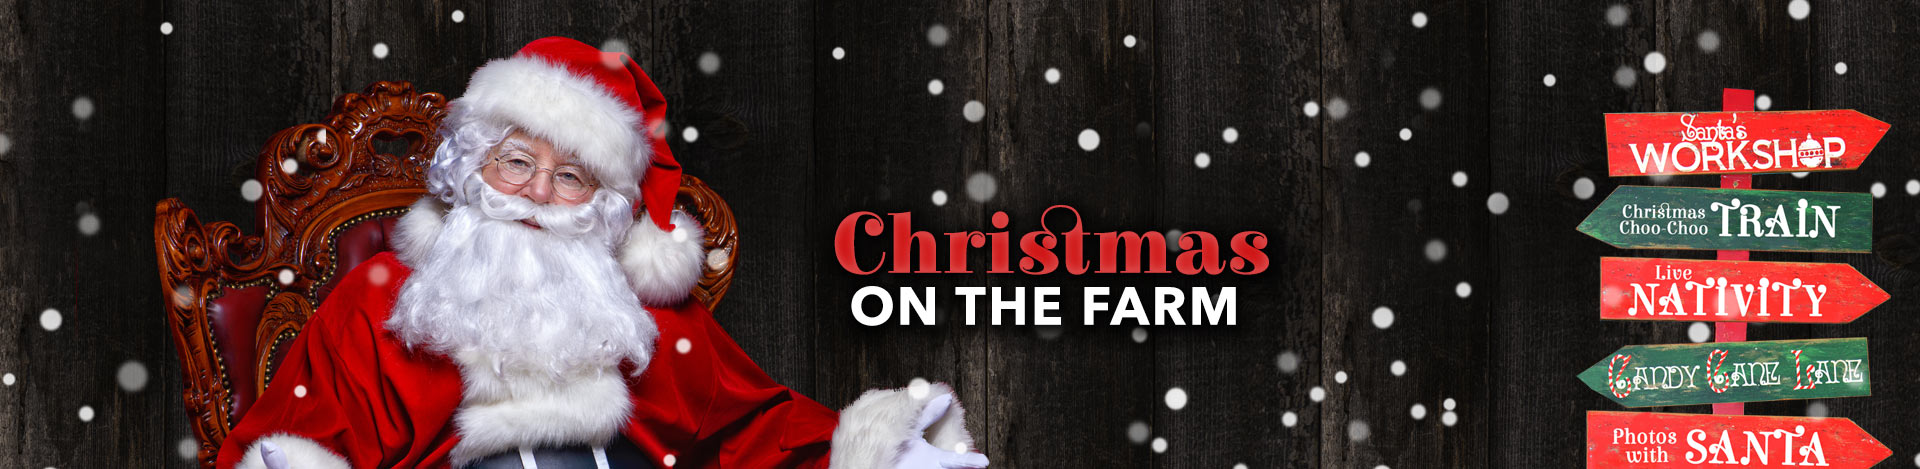 Christmas on the Farm - featuring photos with Santa, Santa's Workshop, and more